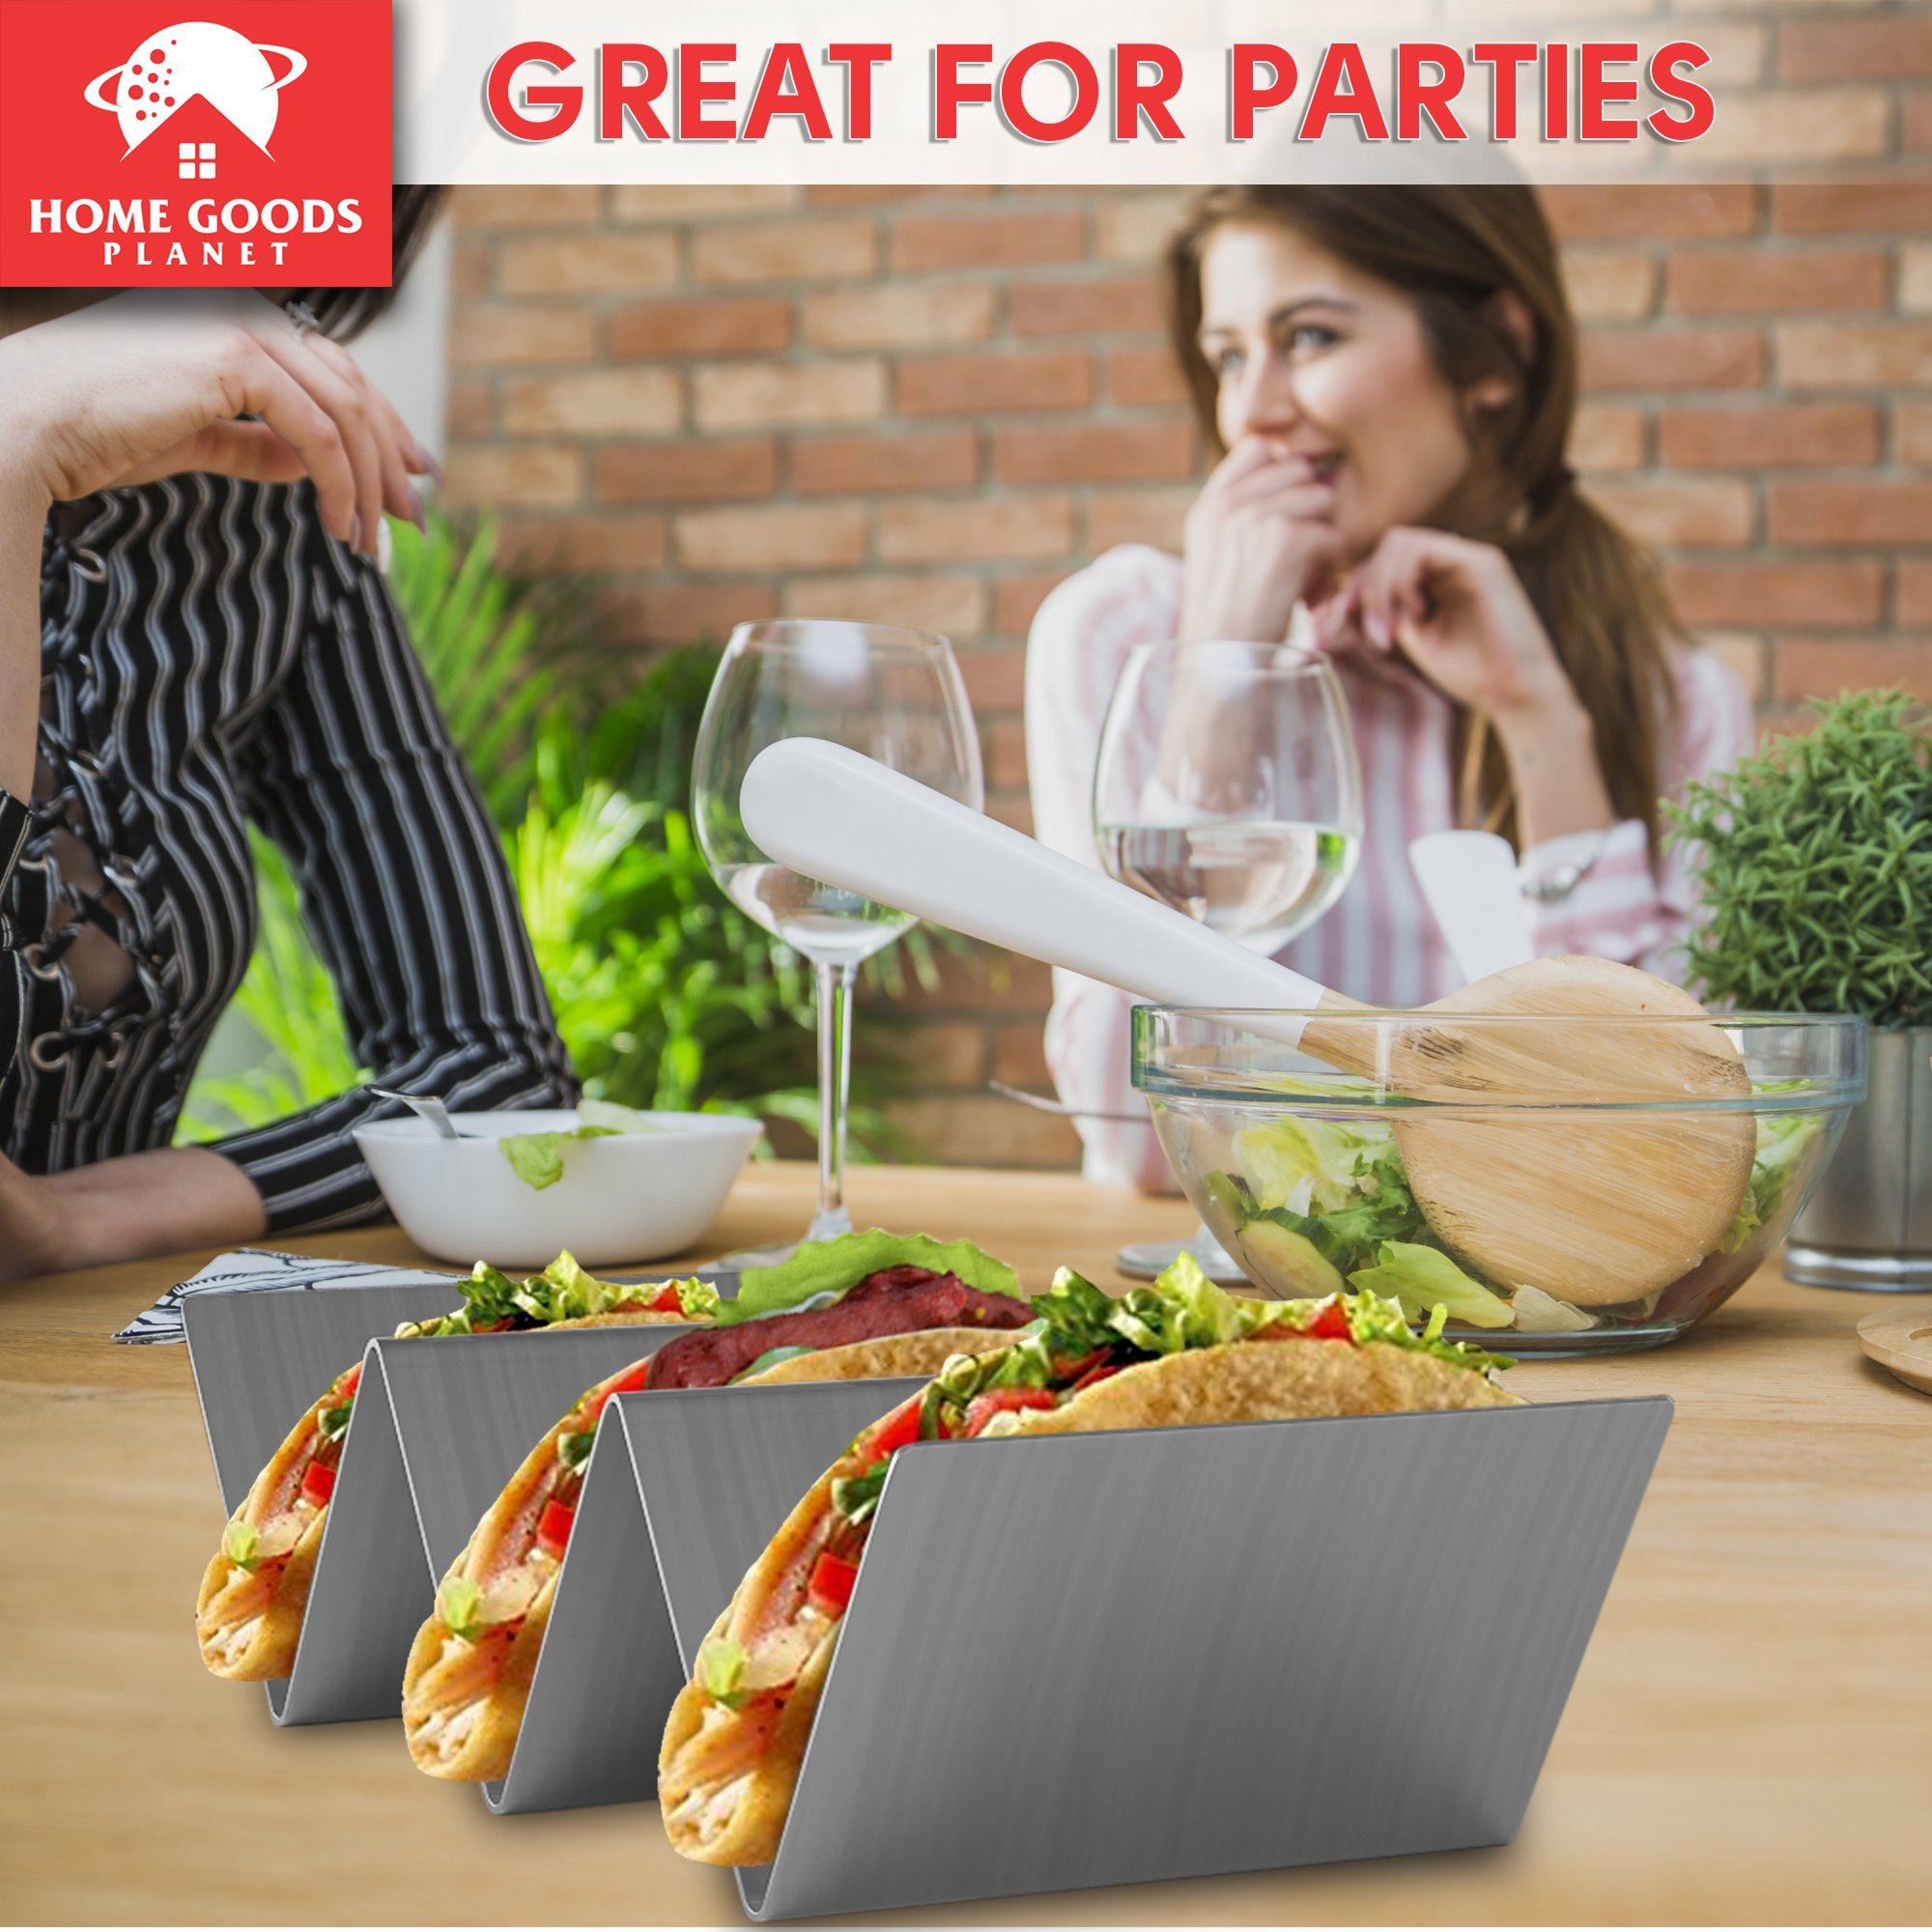 Taco Holder - Set of 2 Shell Racks - Stainless Steel Durable Taco Stand Tray - Ideal for Hard or Soft Shell Tacos - Oven & Dishwasher Safe Tacos Serving Tray or Taco Platter - Includes Recipe e-book by Home Goods Planet (Image #6)